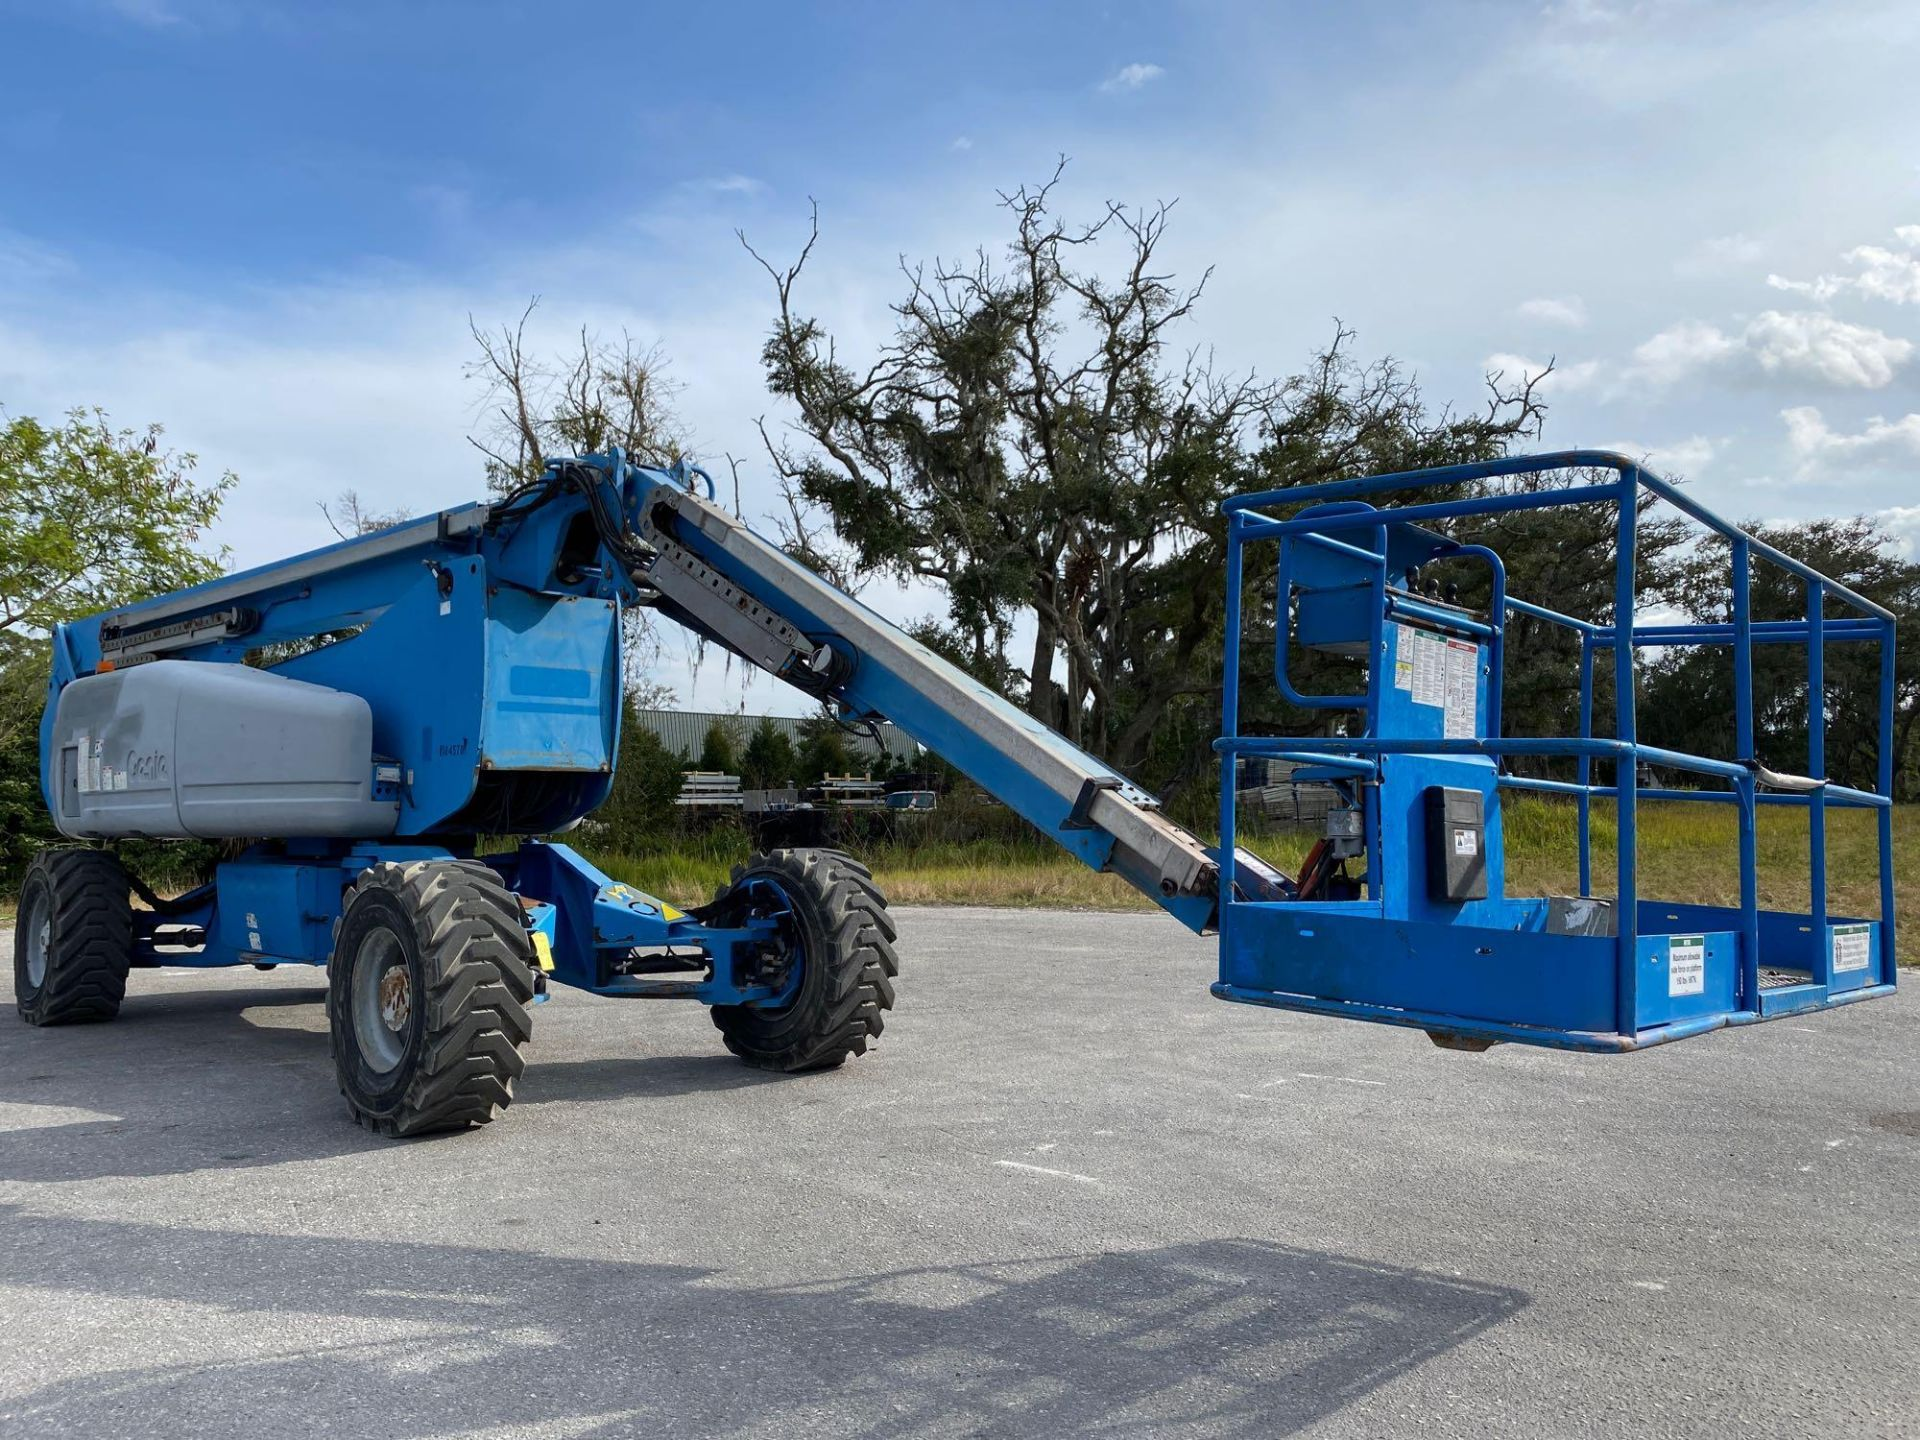 Lot 66 - 2011 GENIE Z135/70 BOOM LIFT 4x4, POWERED BY DEUTZ DIESEL ENGINE,135' PLATFORM HEIGHT